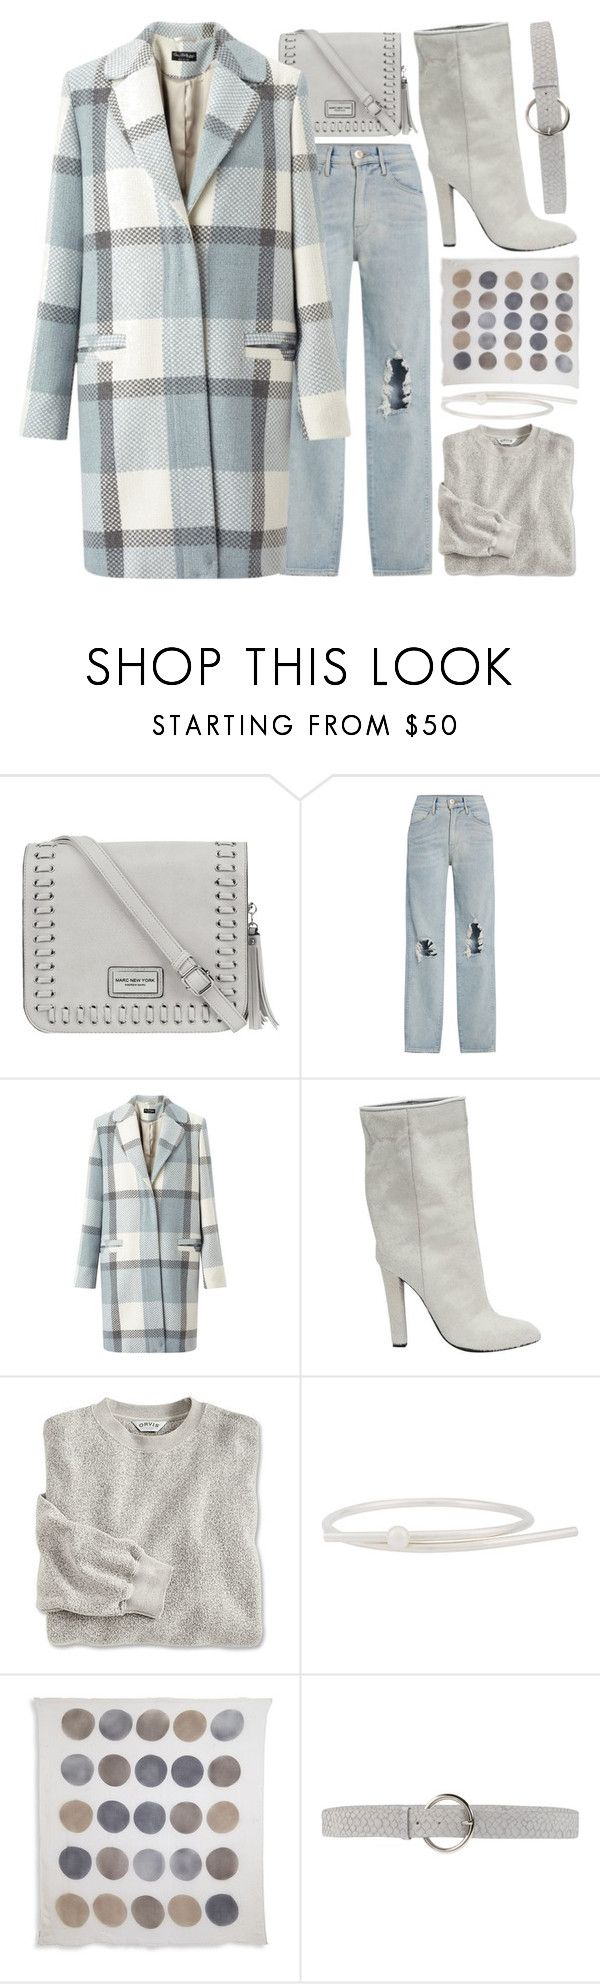 """""""mist"""" by foundlostme ❤ liked on Polyvore featuring Andrew Marc, 3x1, Miss Selfridge, Alexander Wang, Sara Robertsson, Peserico, Orciani, outfitonly and plaidcoats"""